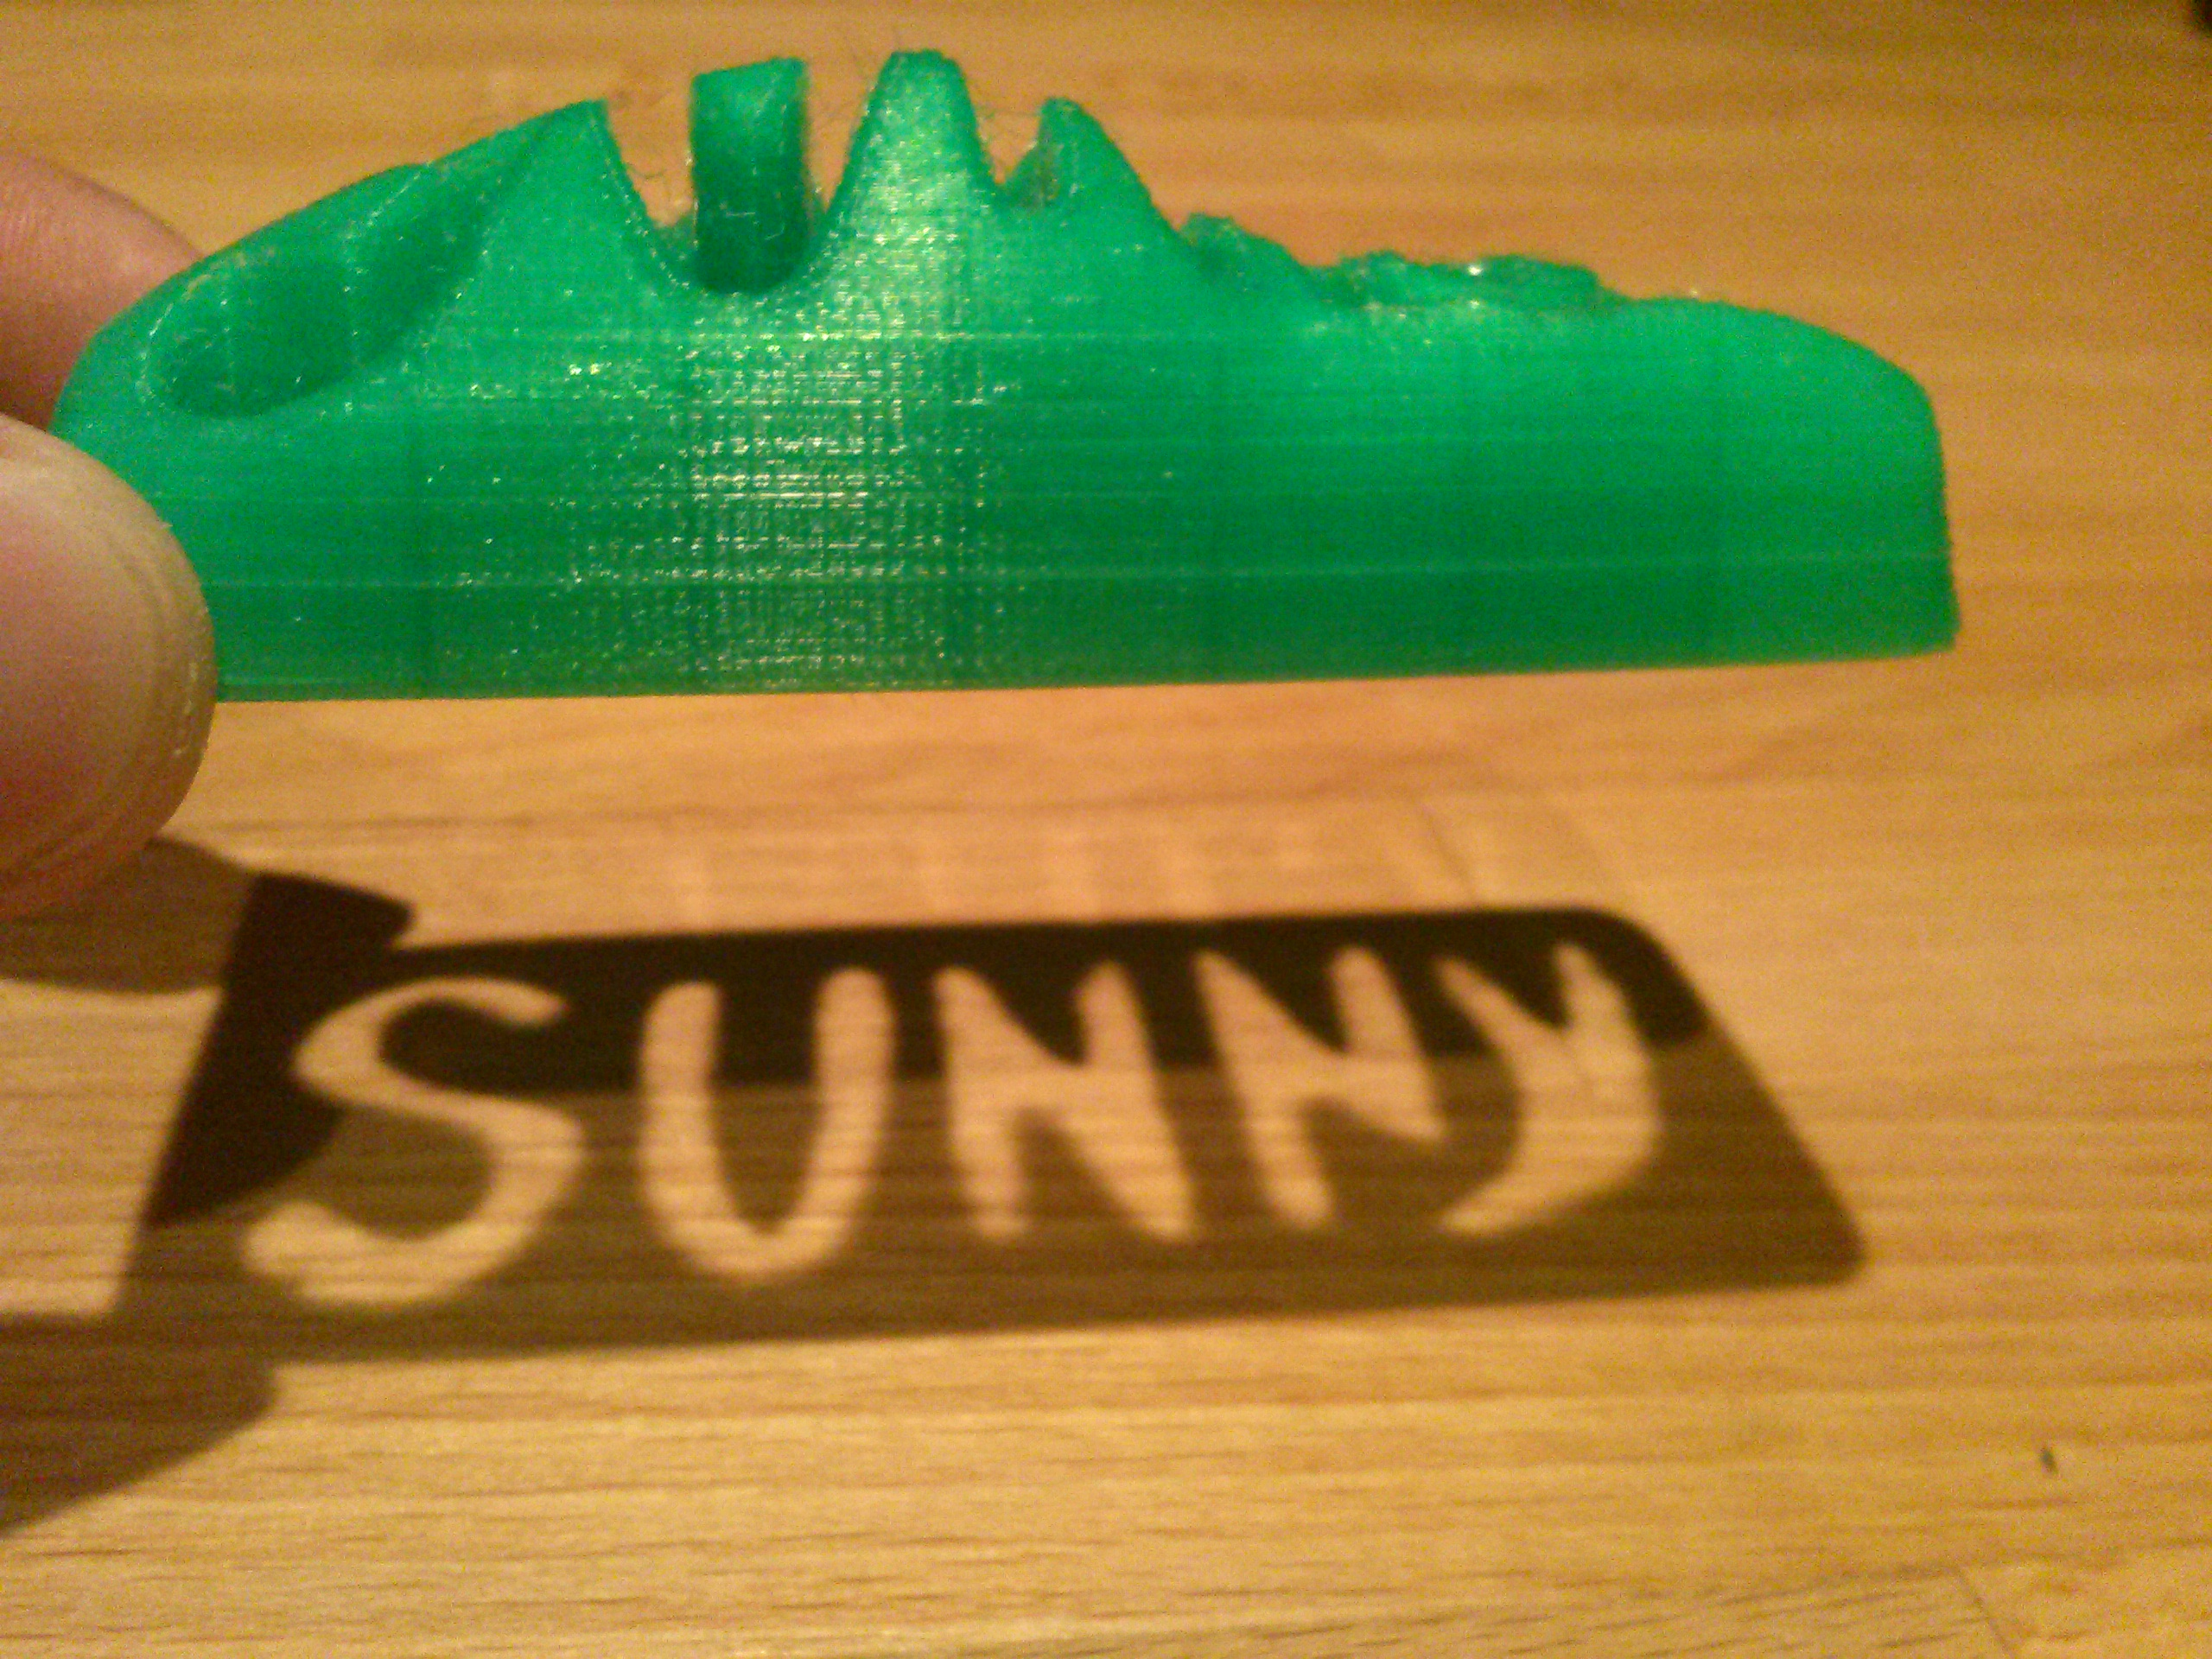 3D Printed Toy Car With a Cut Out Name: 8 Steps (with Pictures)